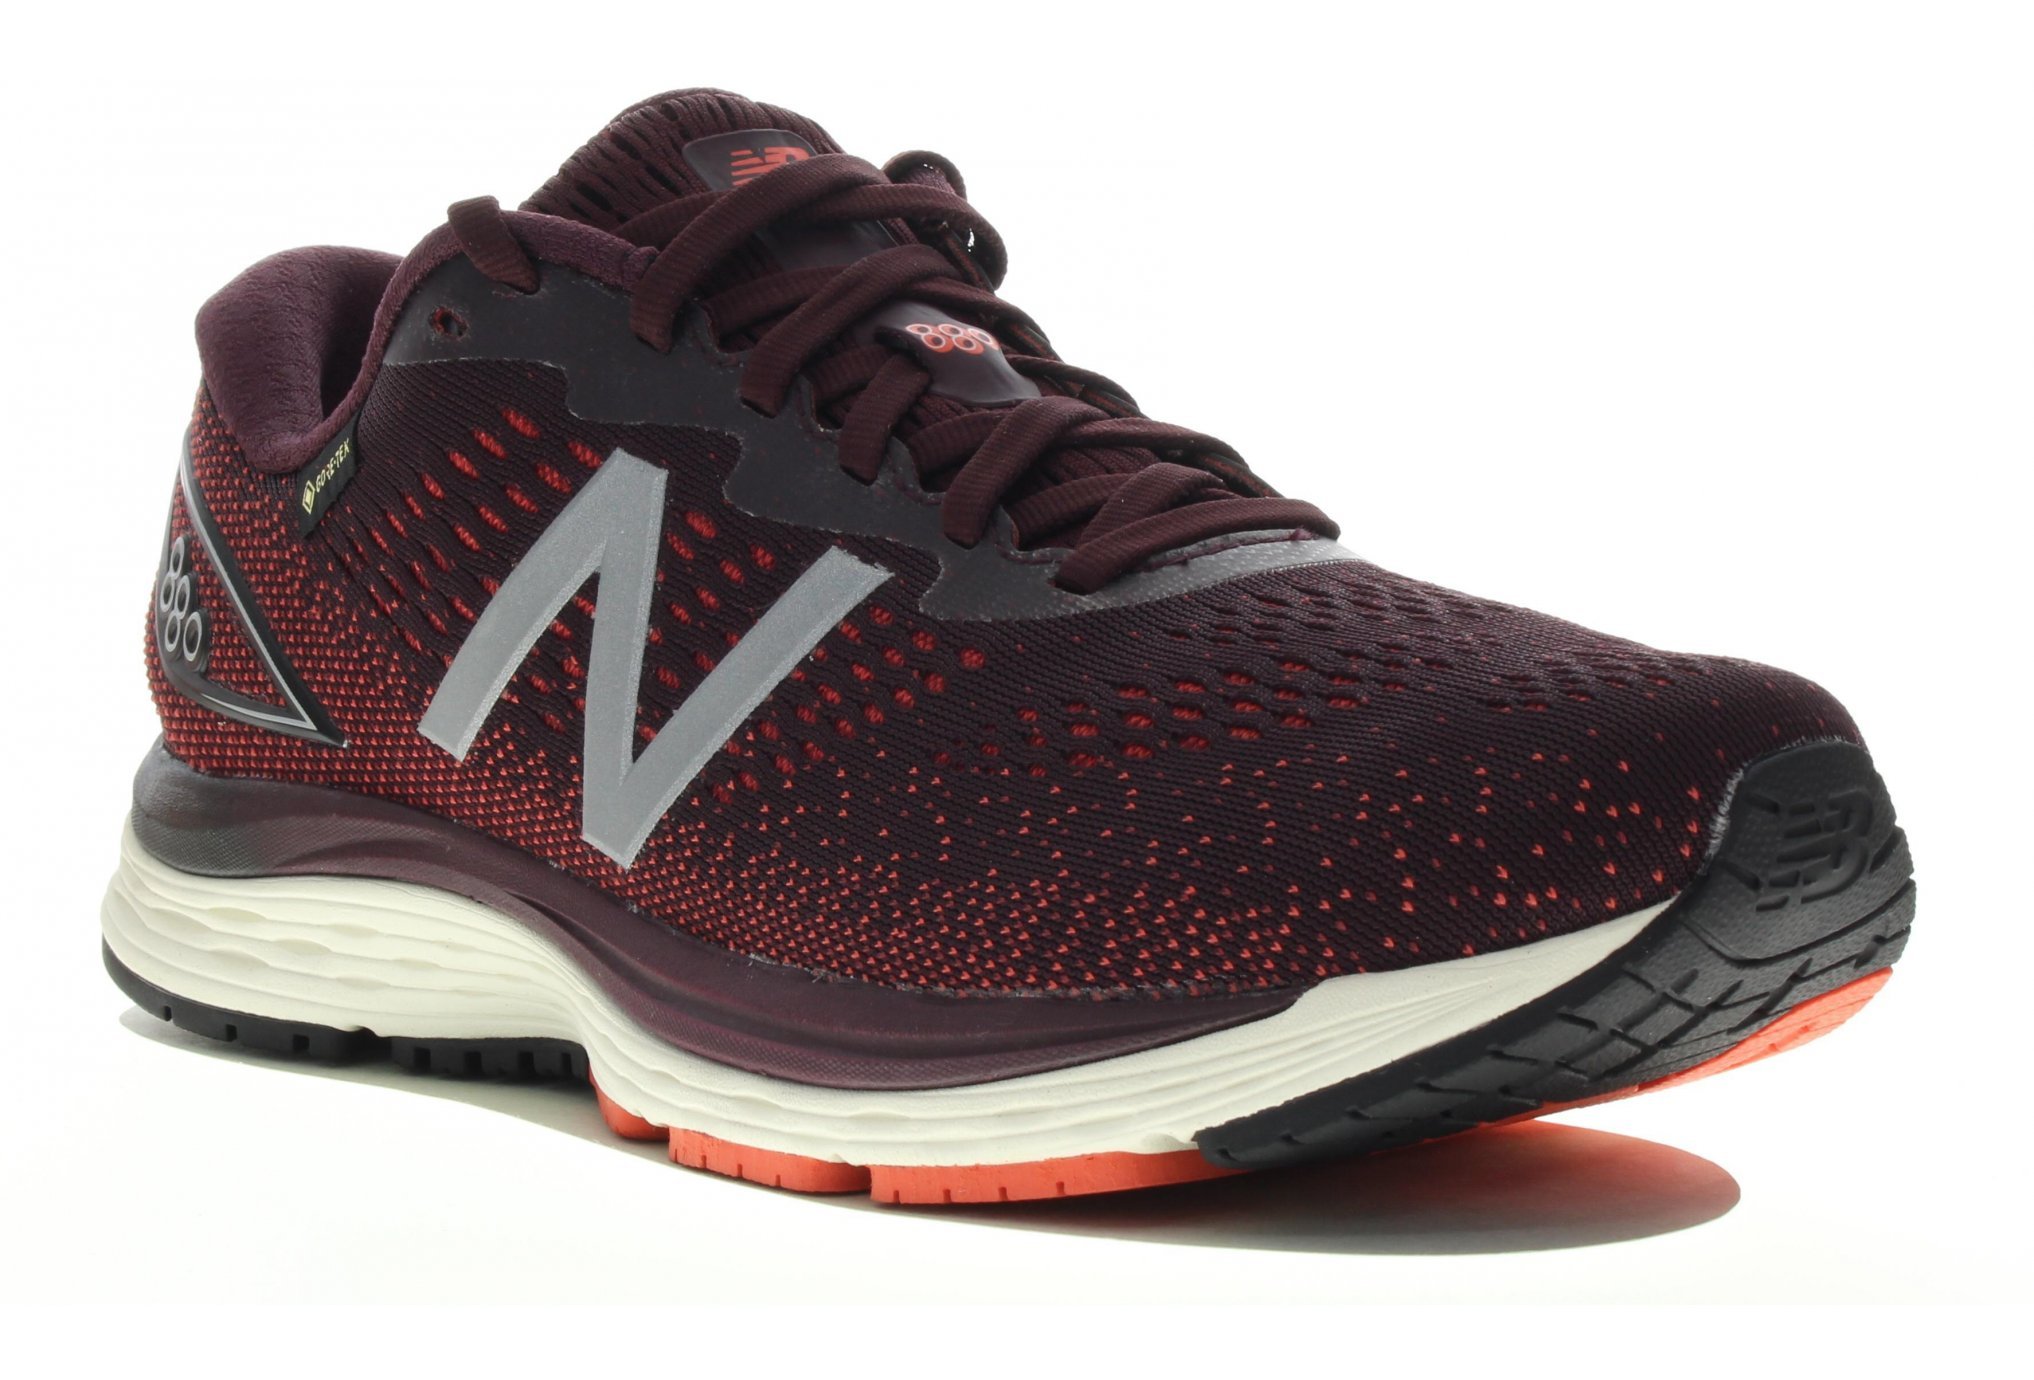 New Balance M 880 V9 Gore-Tex - D Chaussures homme